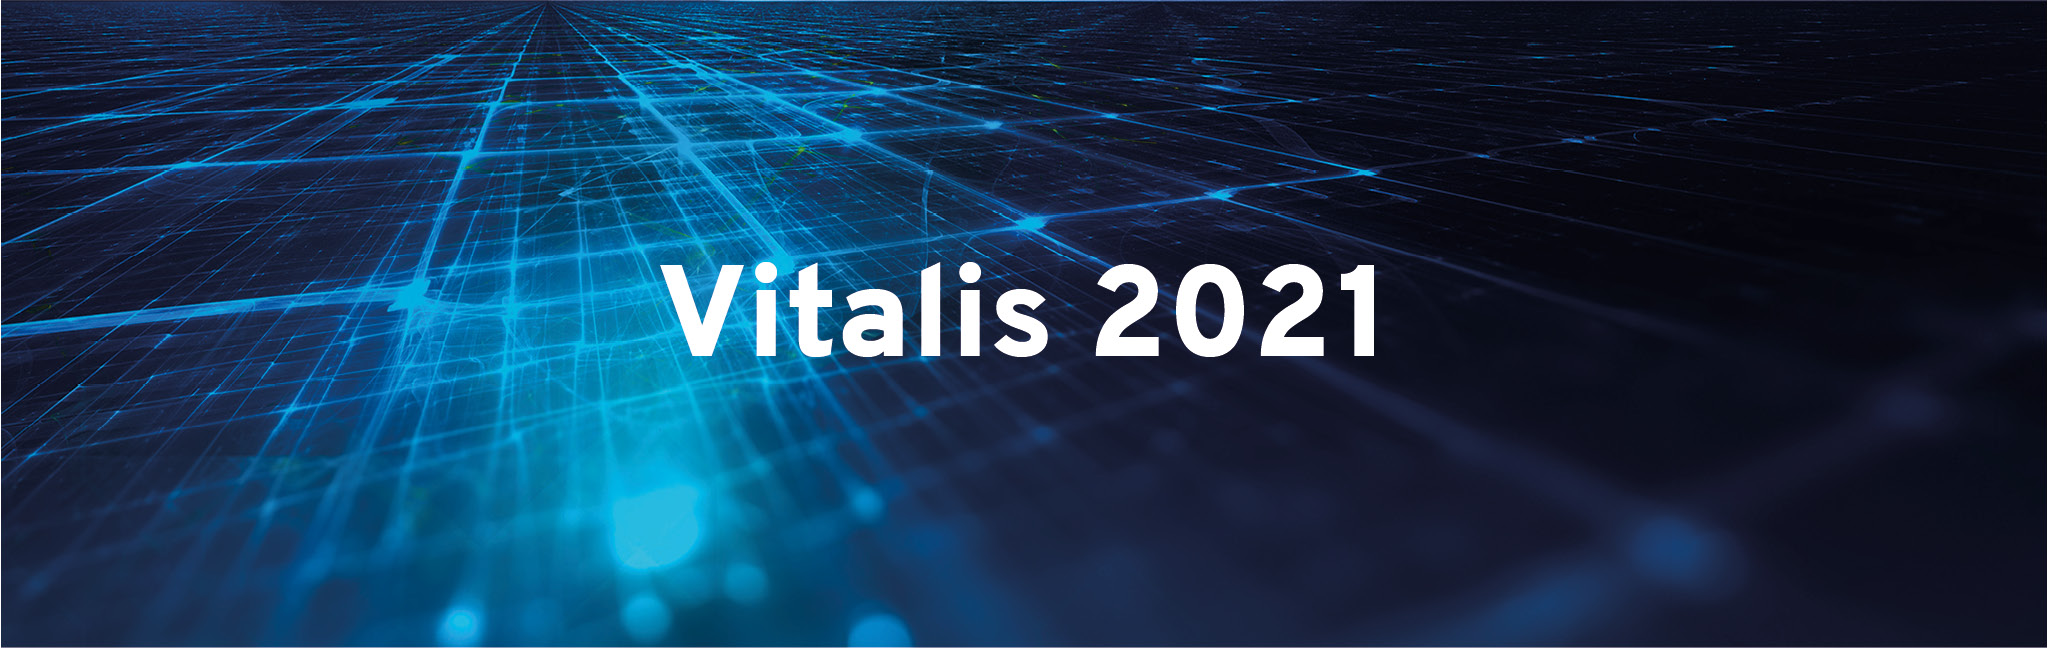 Header image for Vitalis 2021